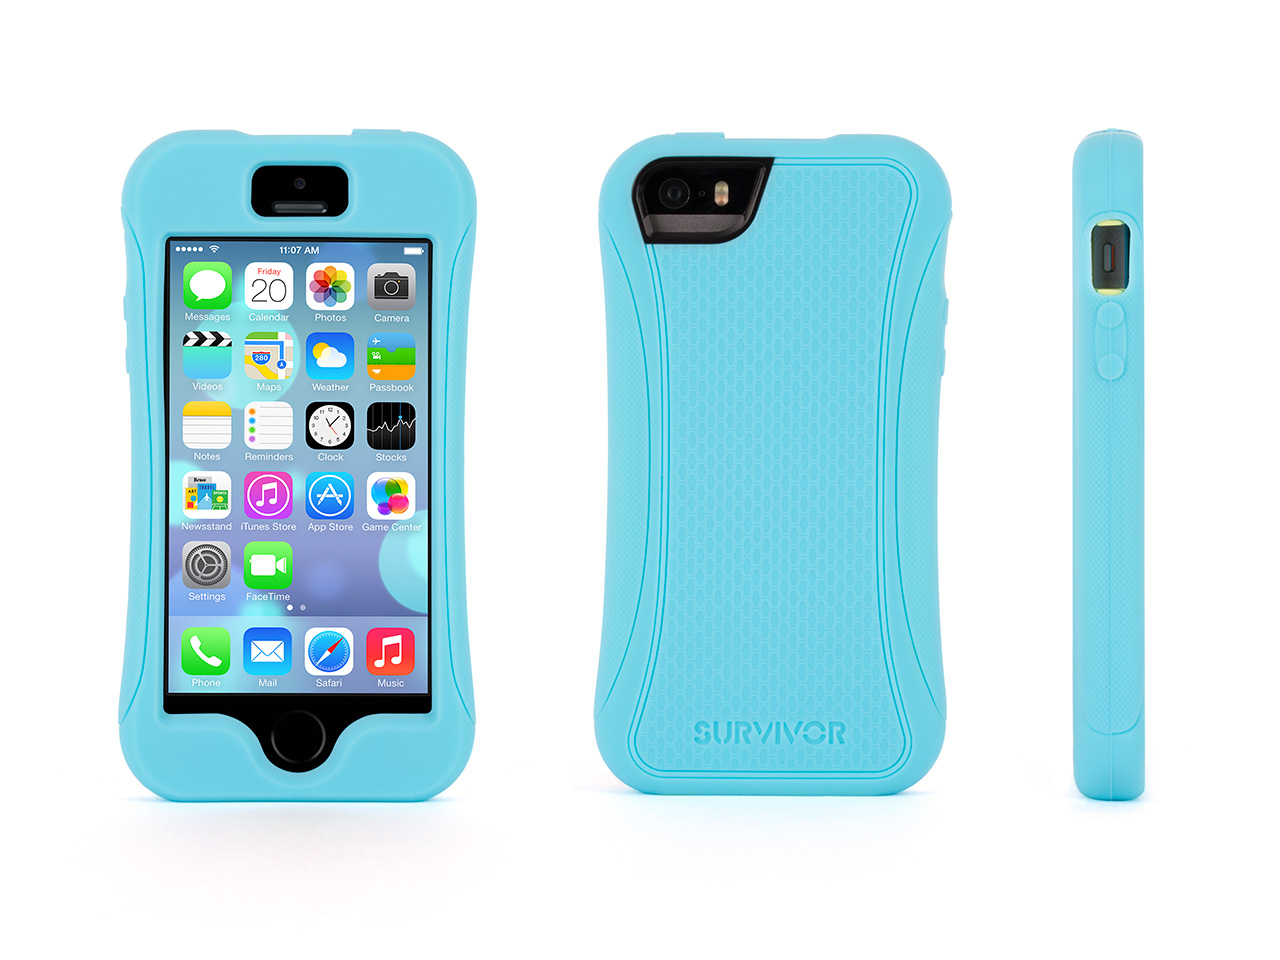 Turquoise Survivor Slim Protective Case for iPhone 5/5s